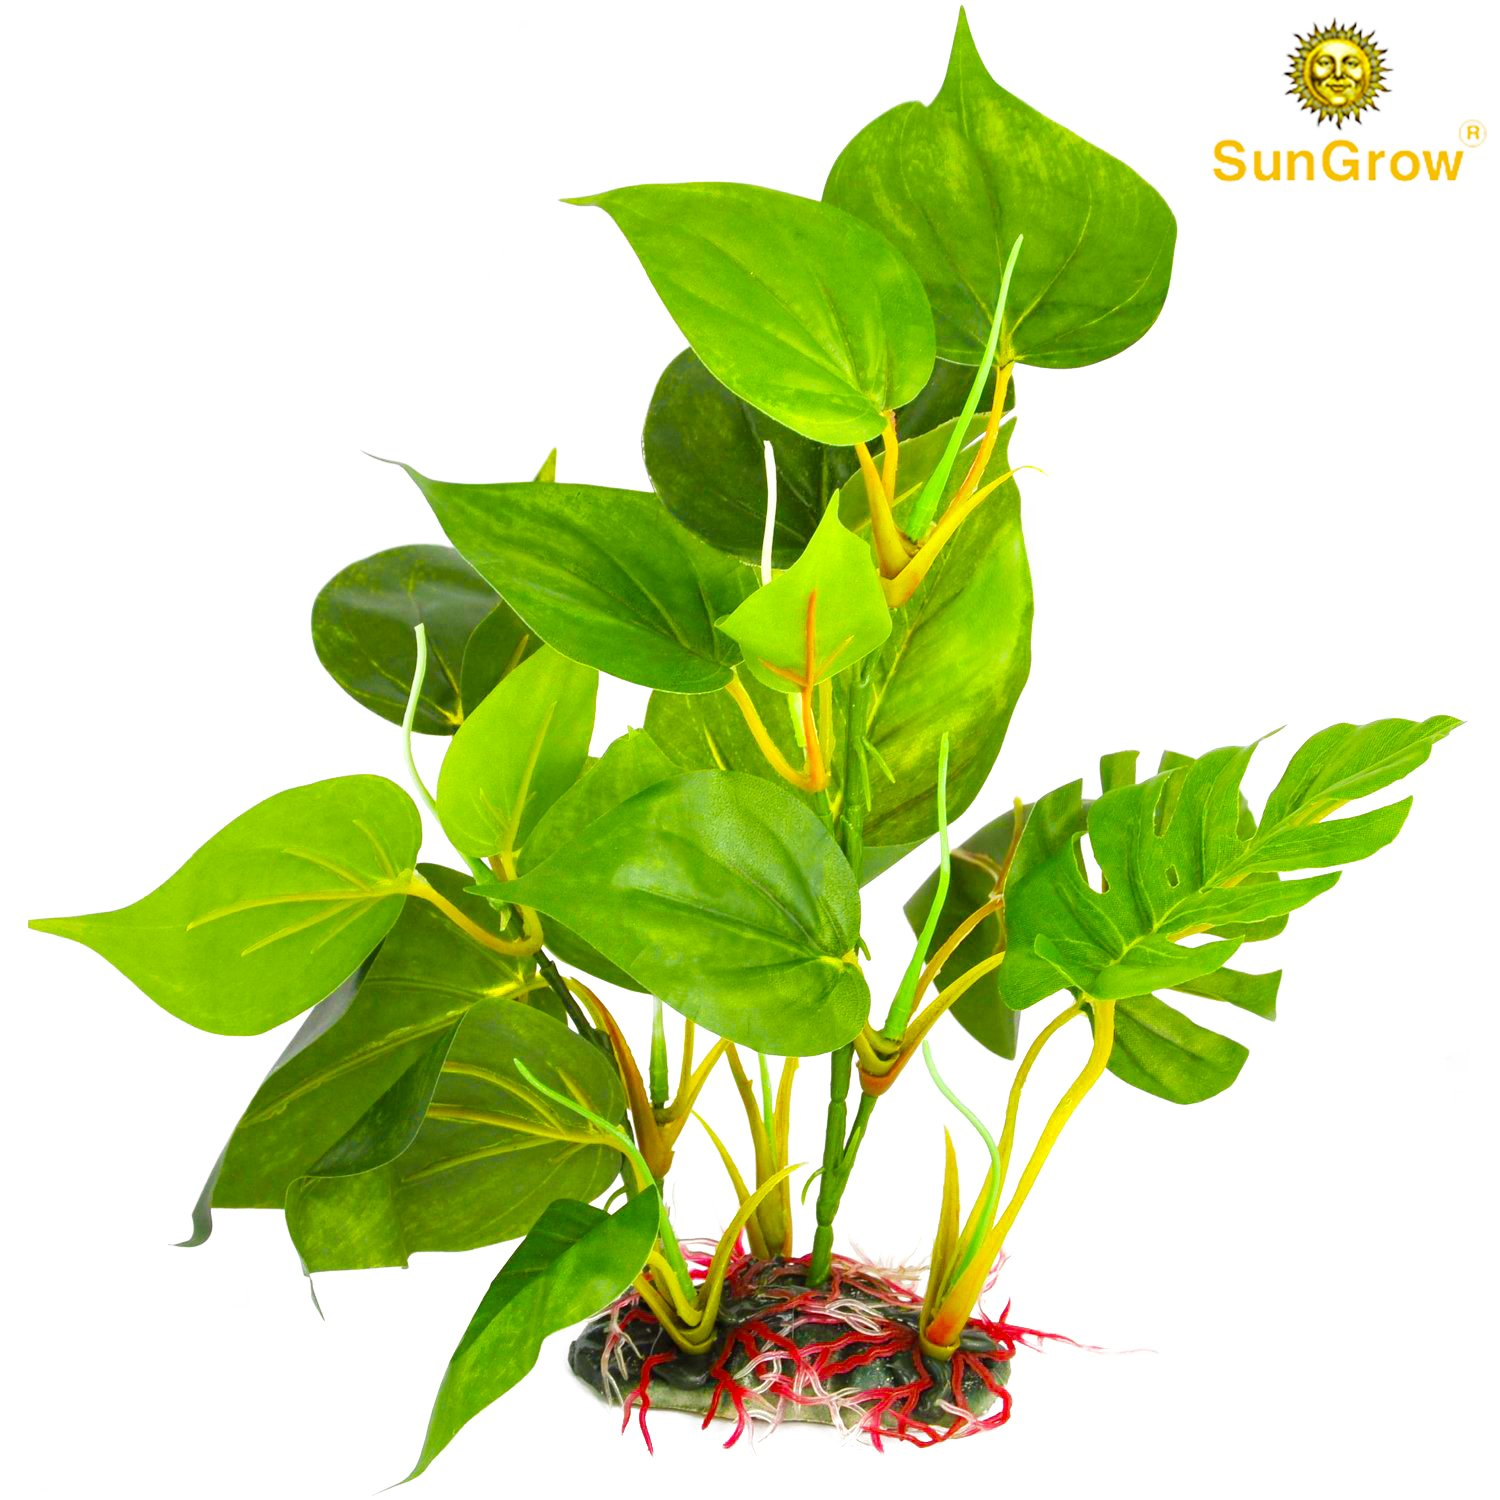 SunGrow Plastic Plant Leaf